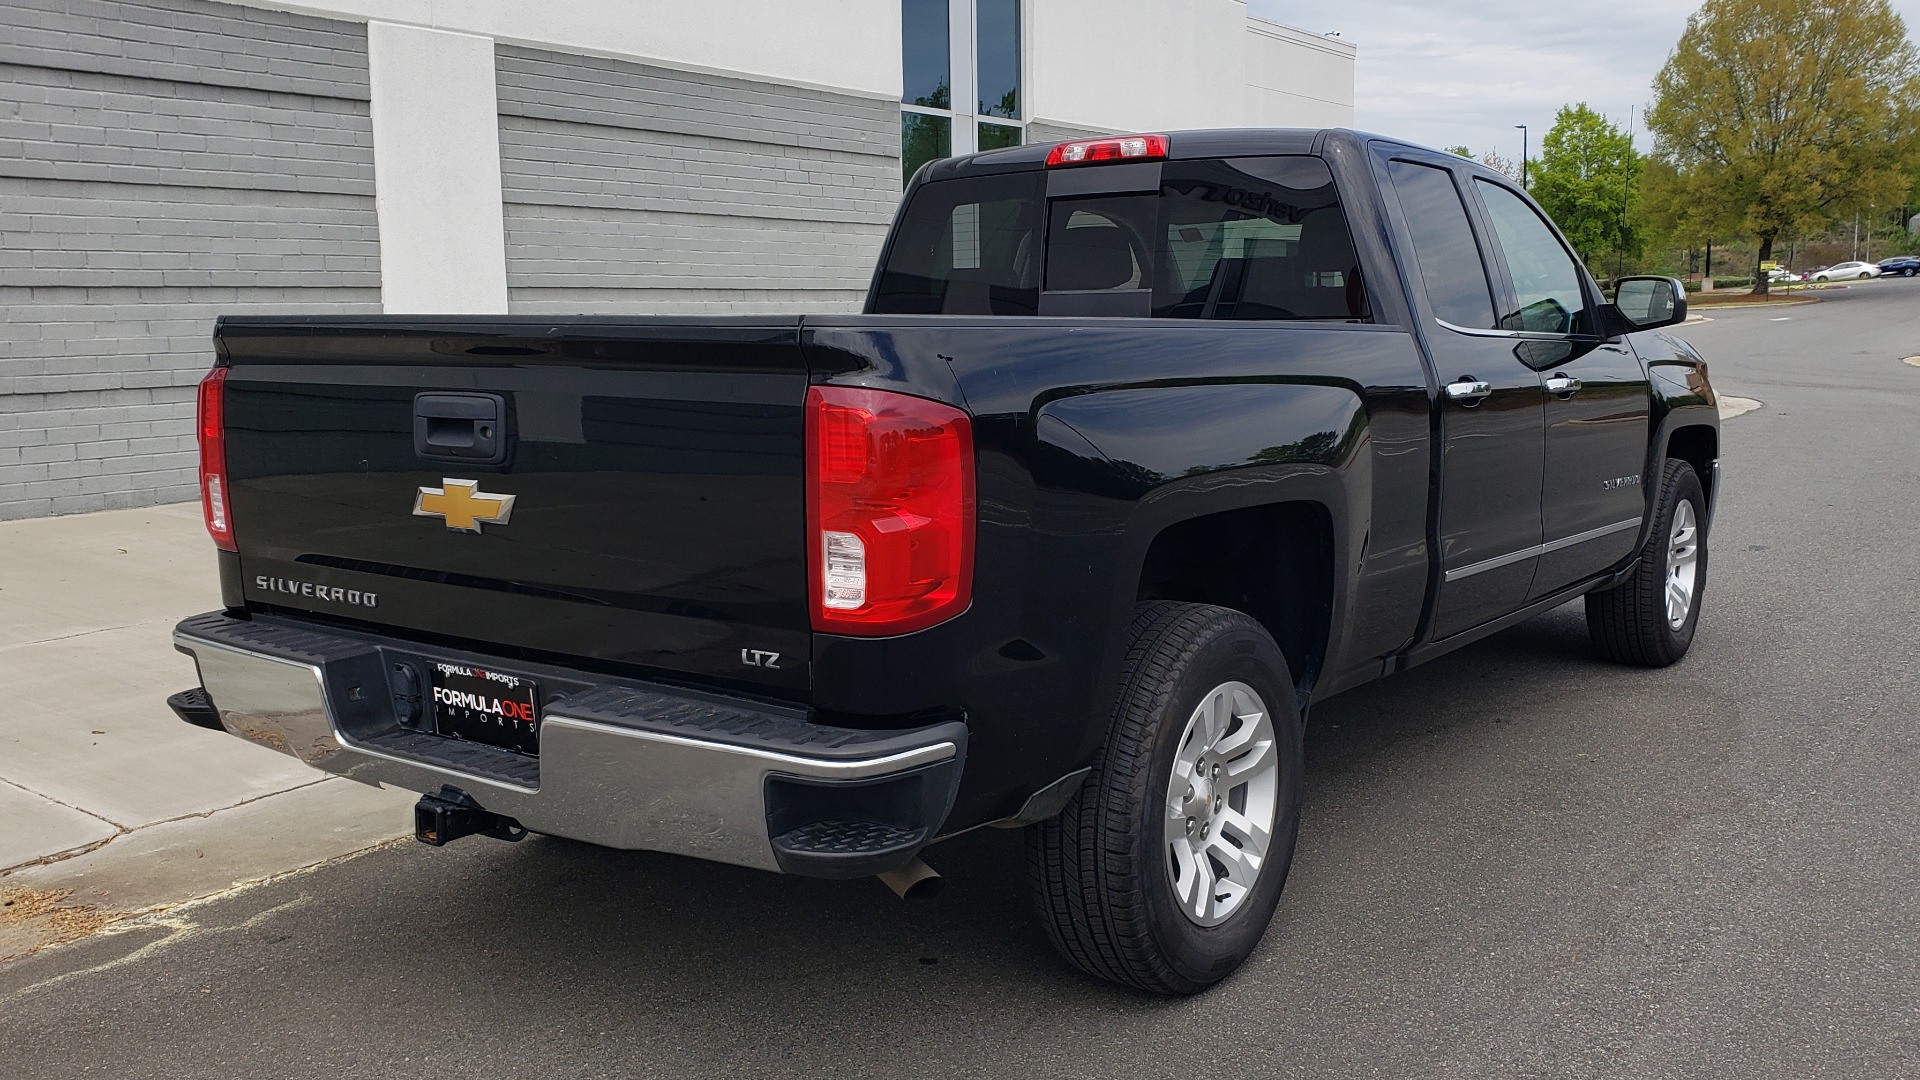 Used 2018 Chevrolet SILVERADO 1500 LTZ 1LZ / 5.3L V8 / 2WD / 6-SPD AUTO / DOUBLECAB / REARVIEW for sale Sold at Formula Imports in Charlotte NC 28227 8